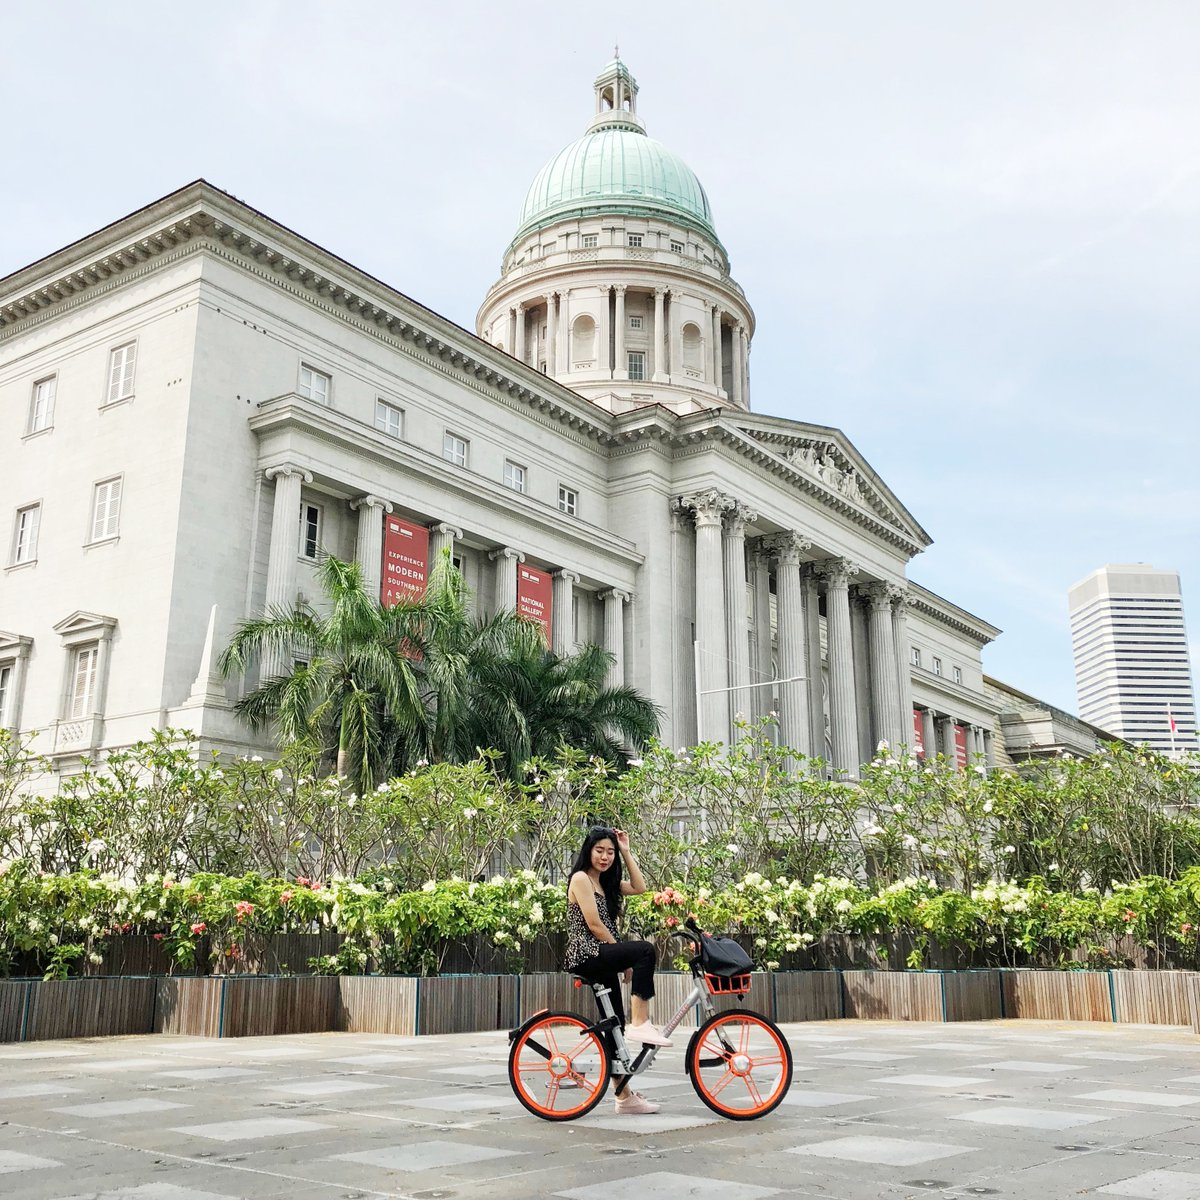 Did you know that the National Gallery is actually 690,000 sq. ft, the size of more than 12 football fields?  How long will it take to cycle in the place? Make a guess! Kickstart your adventure by cycling down the Singapore's land and greenery! https://t.co/CXxH3jaYS2